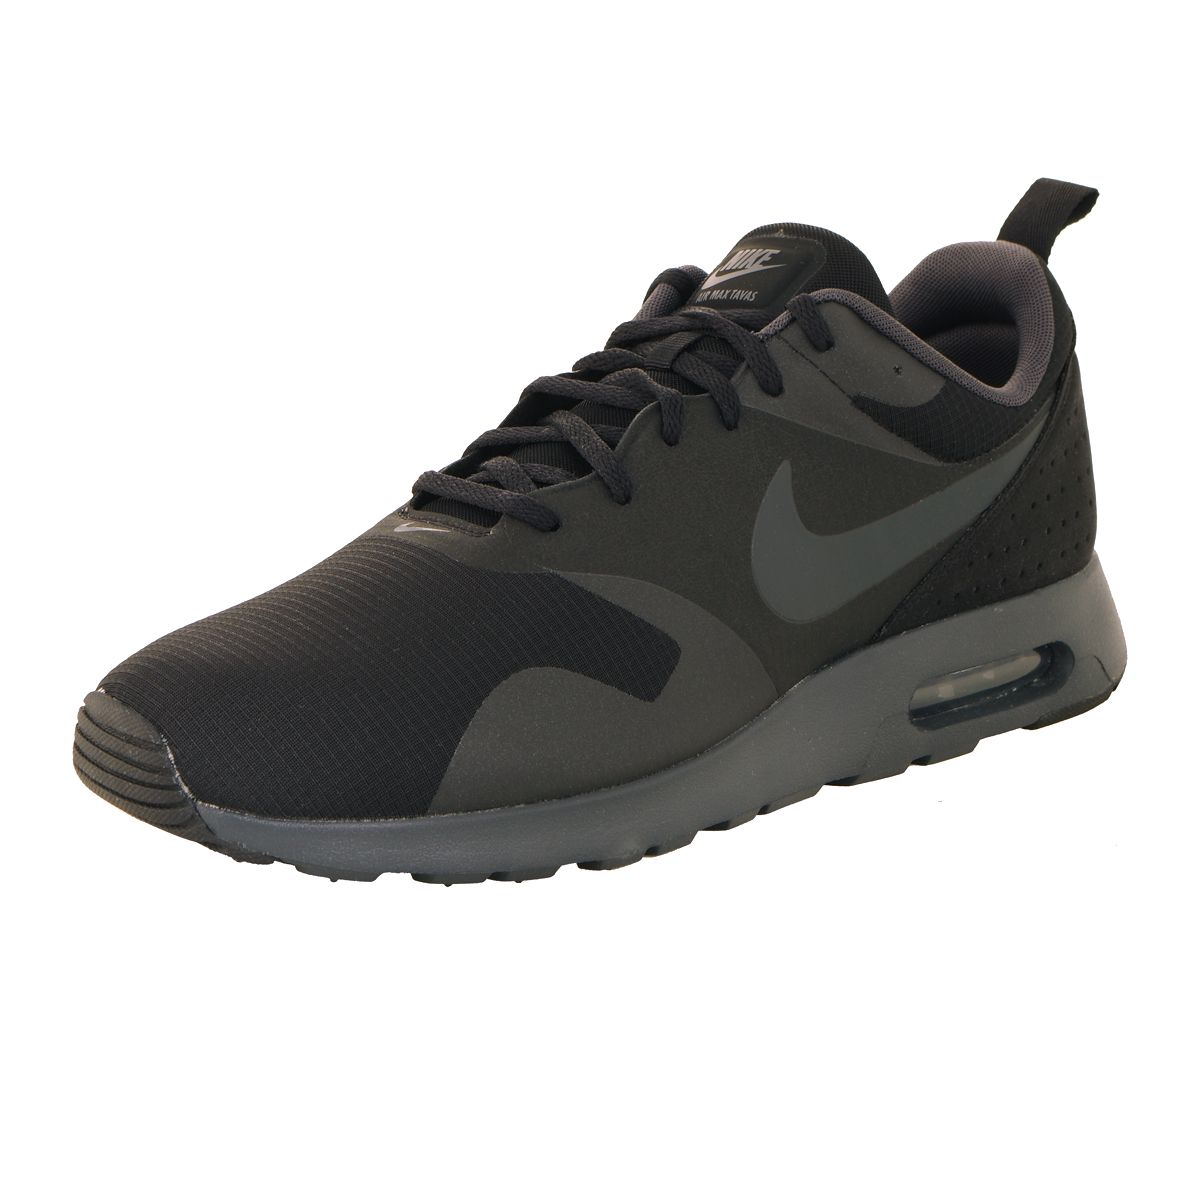 Chaussure Nike Femme Grande Taille